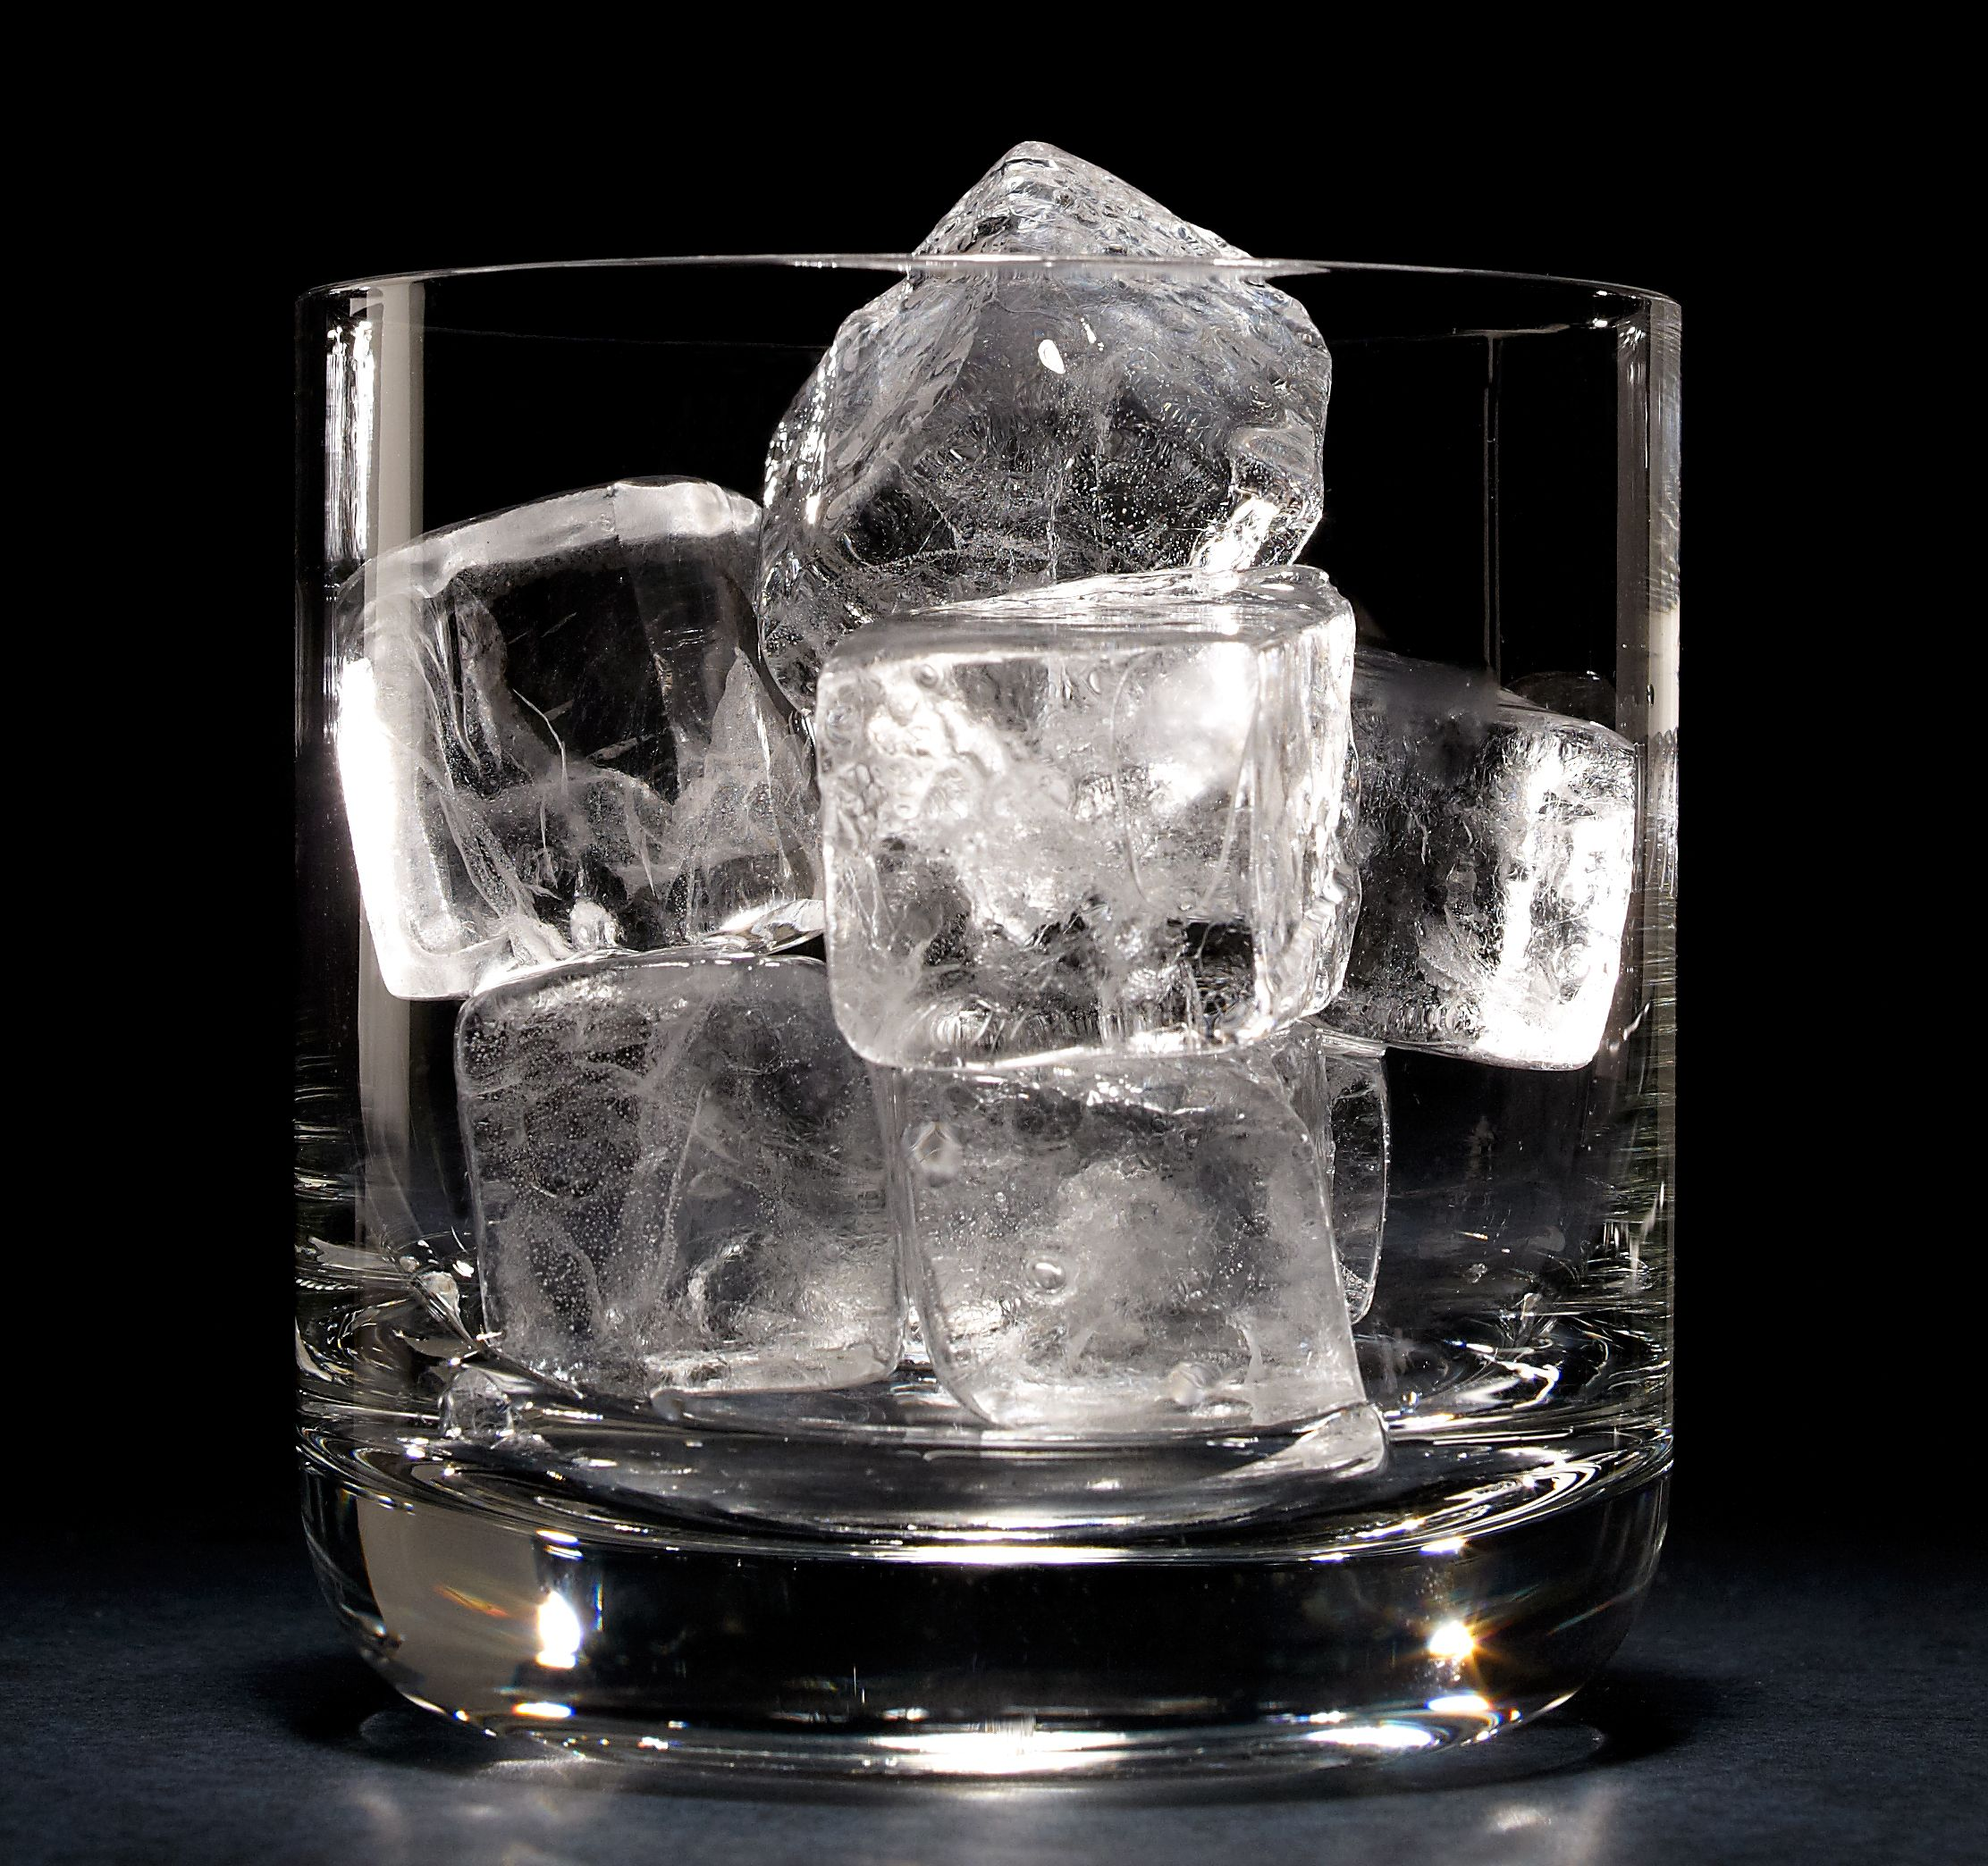 Hoshizaki Square Ice Cubes Are Great For Drinks Very Hard Clean